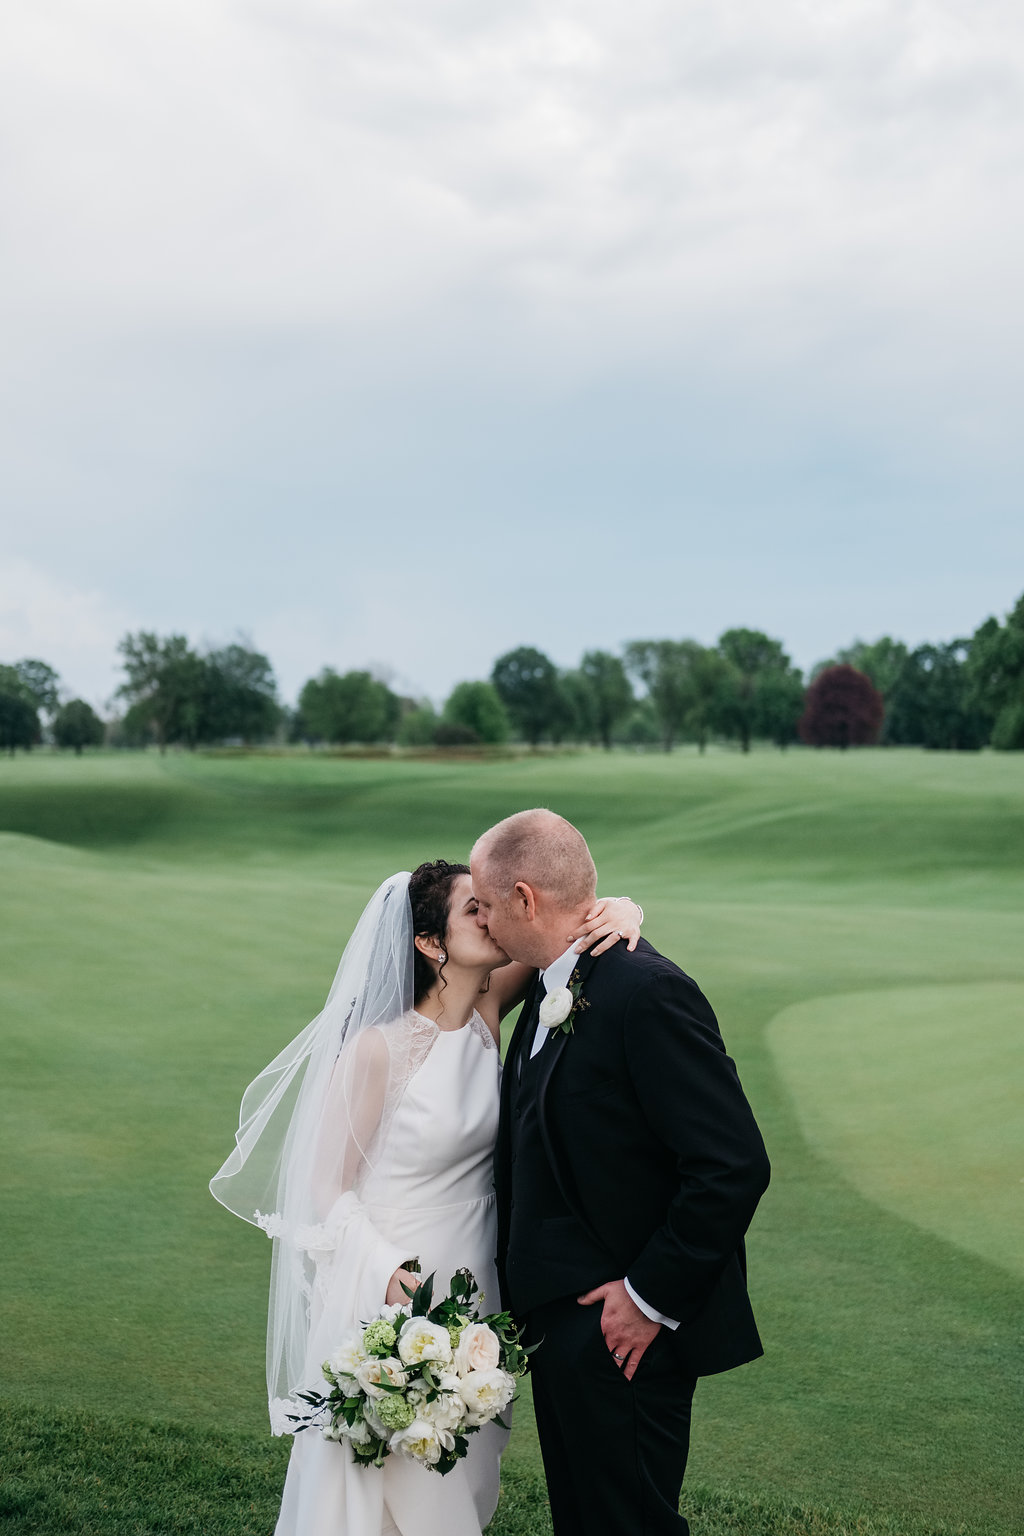 Lisa+Geoffrey_Wedding-39.jpg